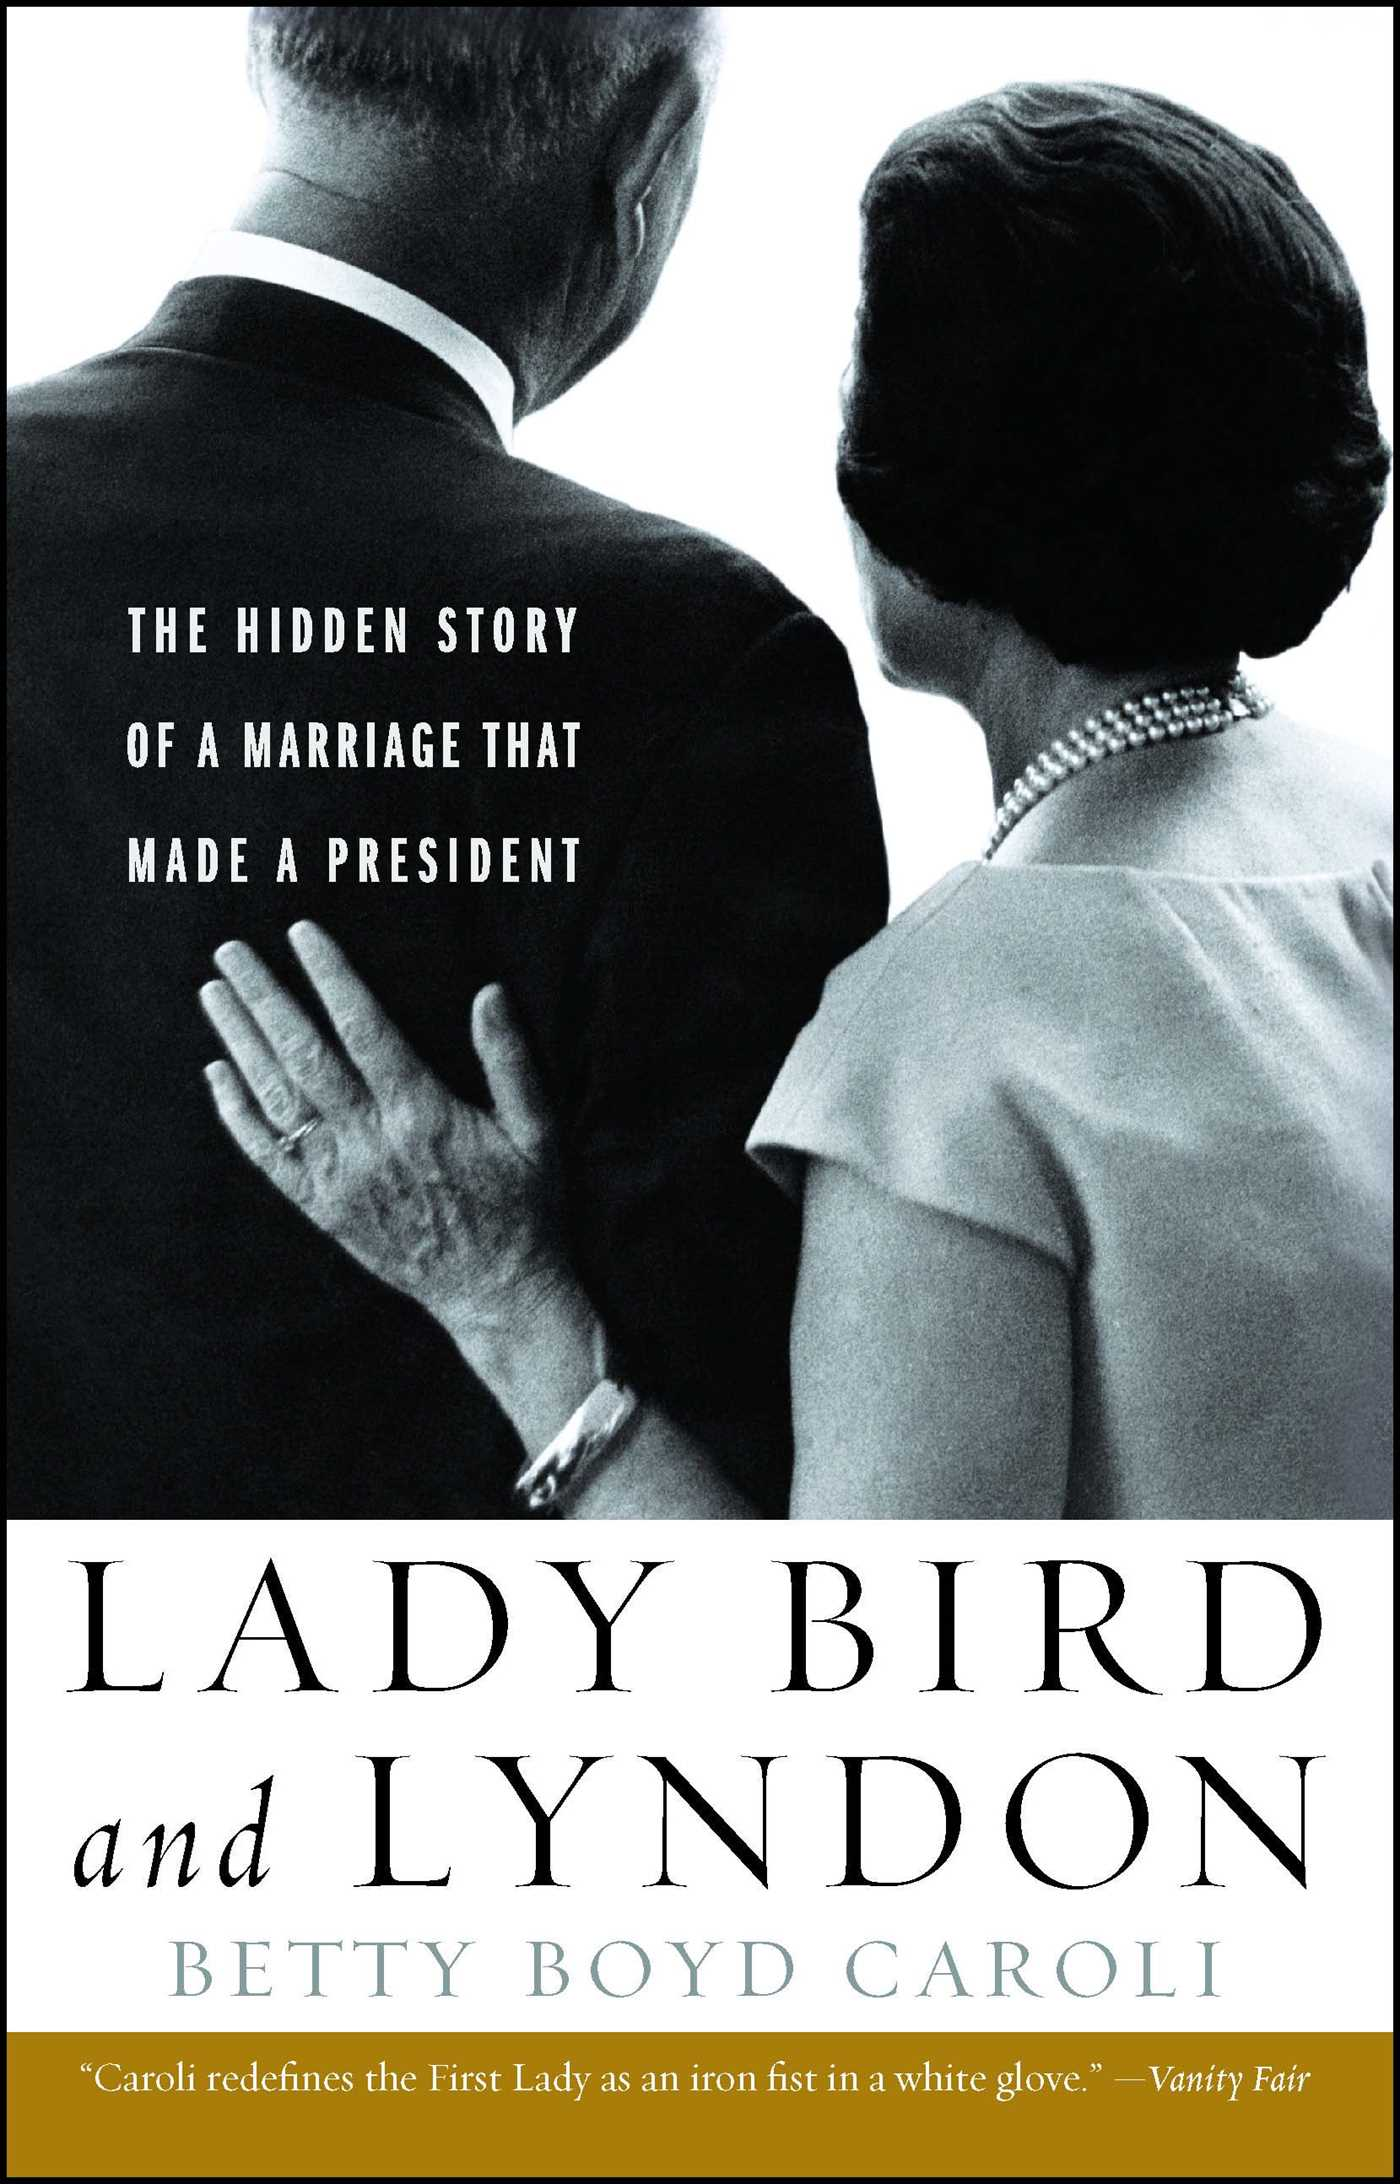 Lady Bird And Lyndon  Book By Betty Boyd Caroli  Official Publisher Page   Simon & Schuster